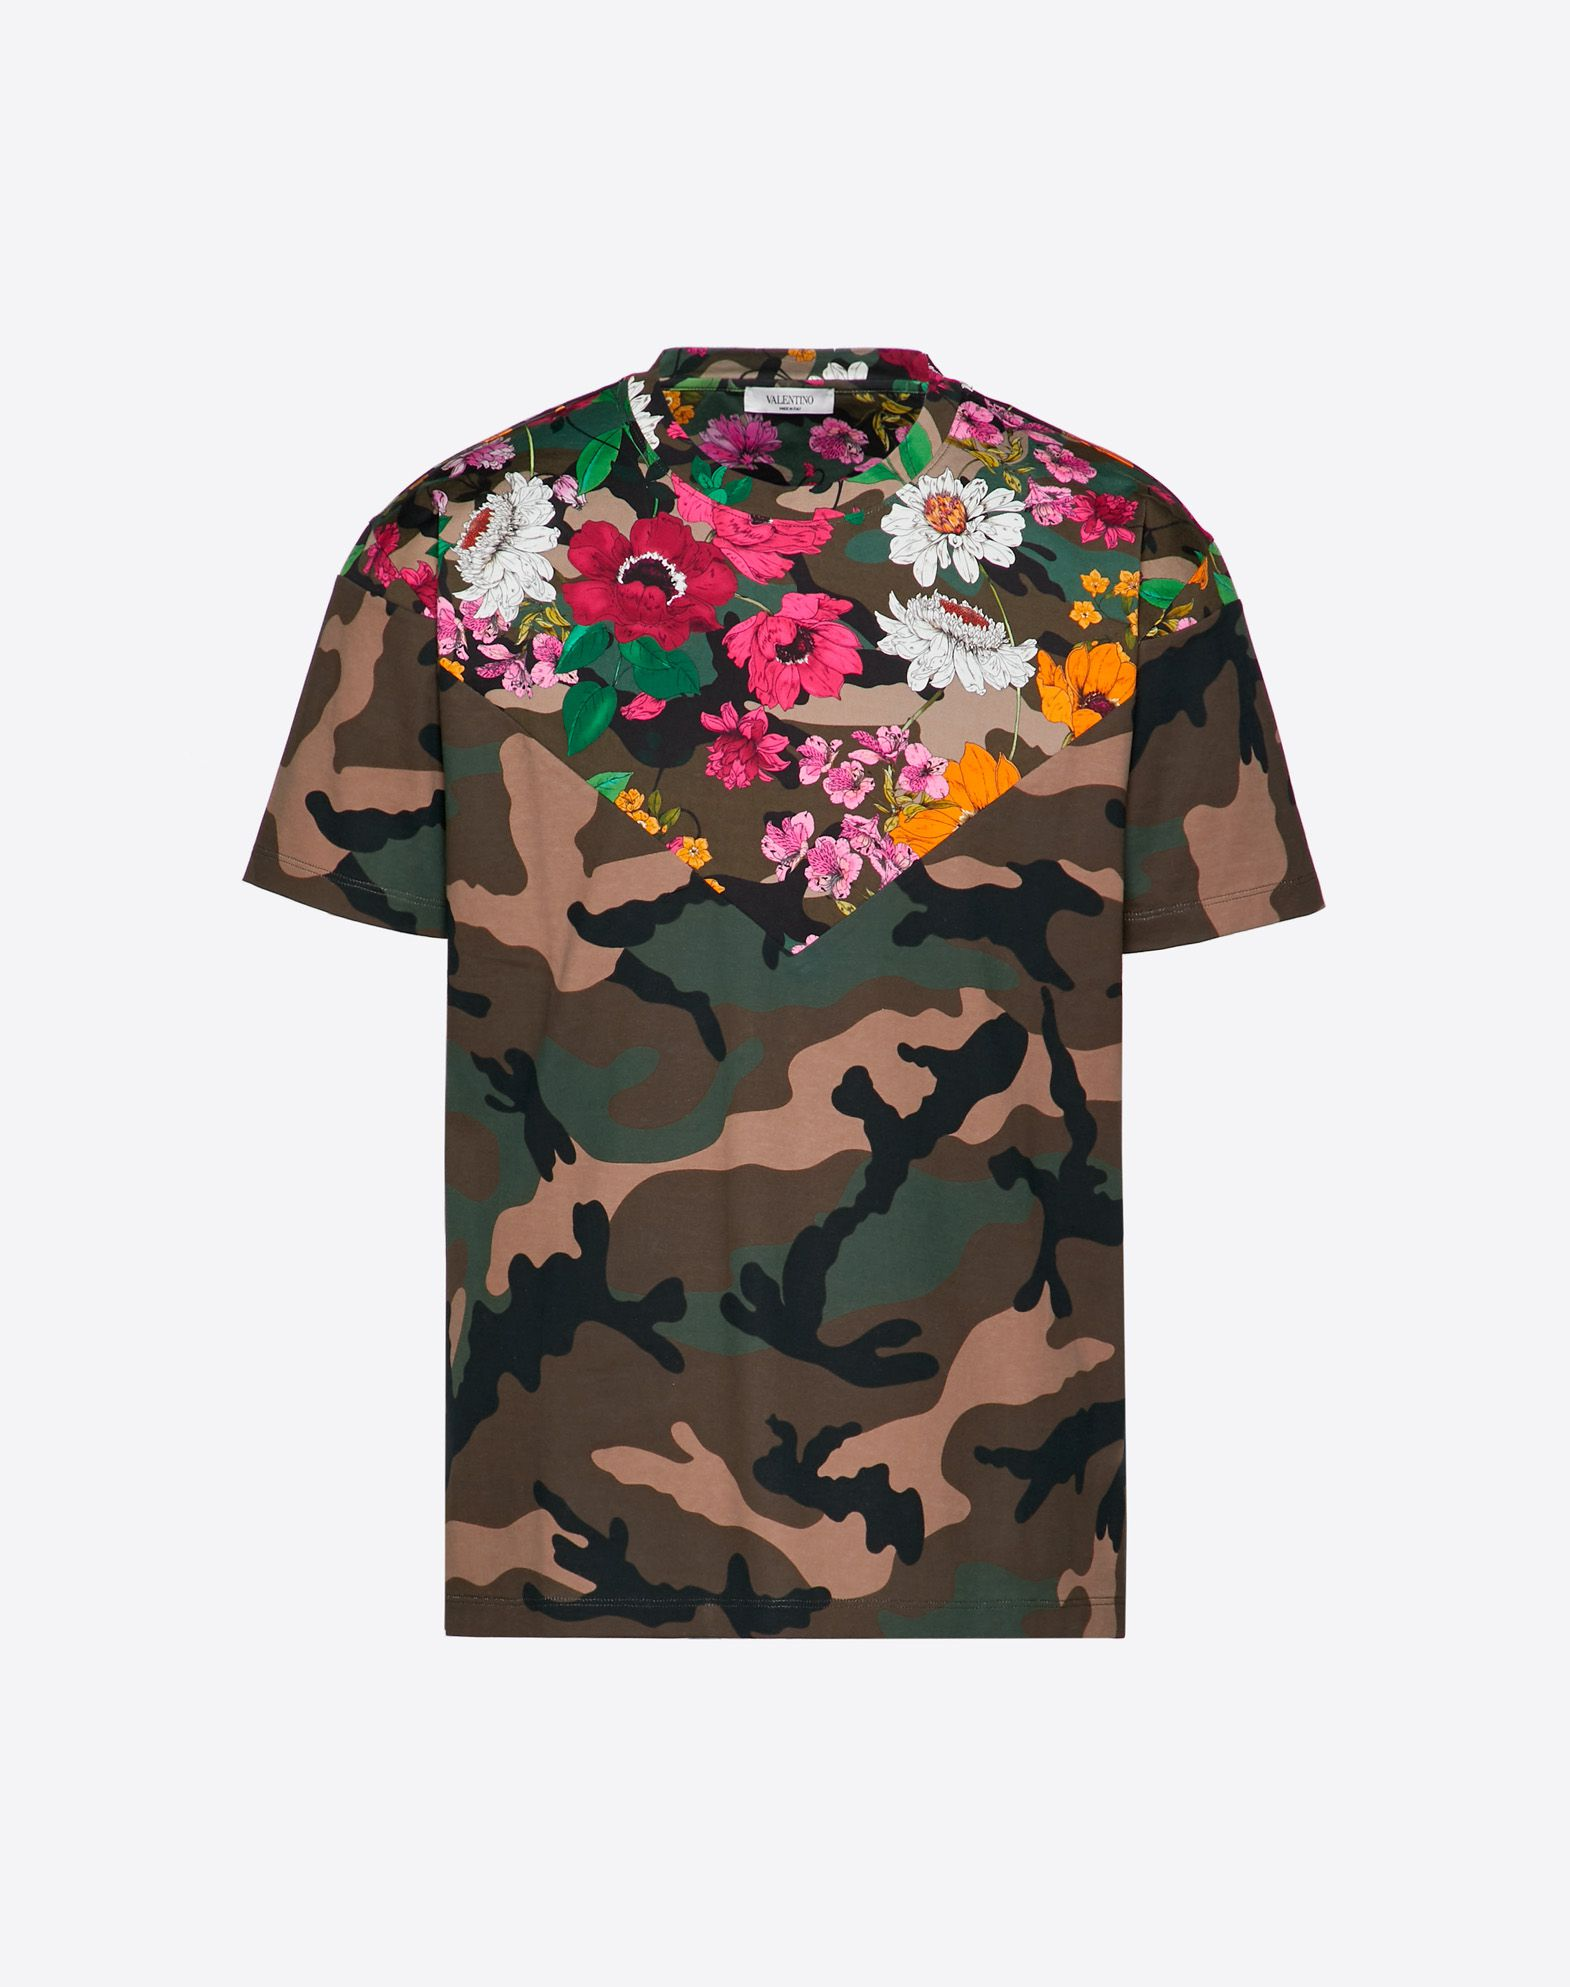 T-SHIRT WITH DEW CAMOU PRINT